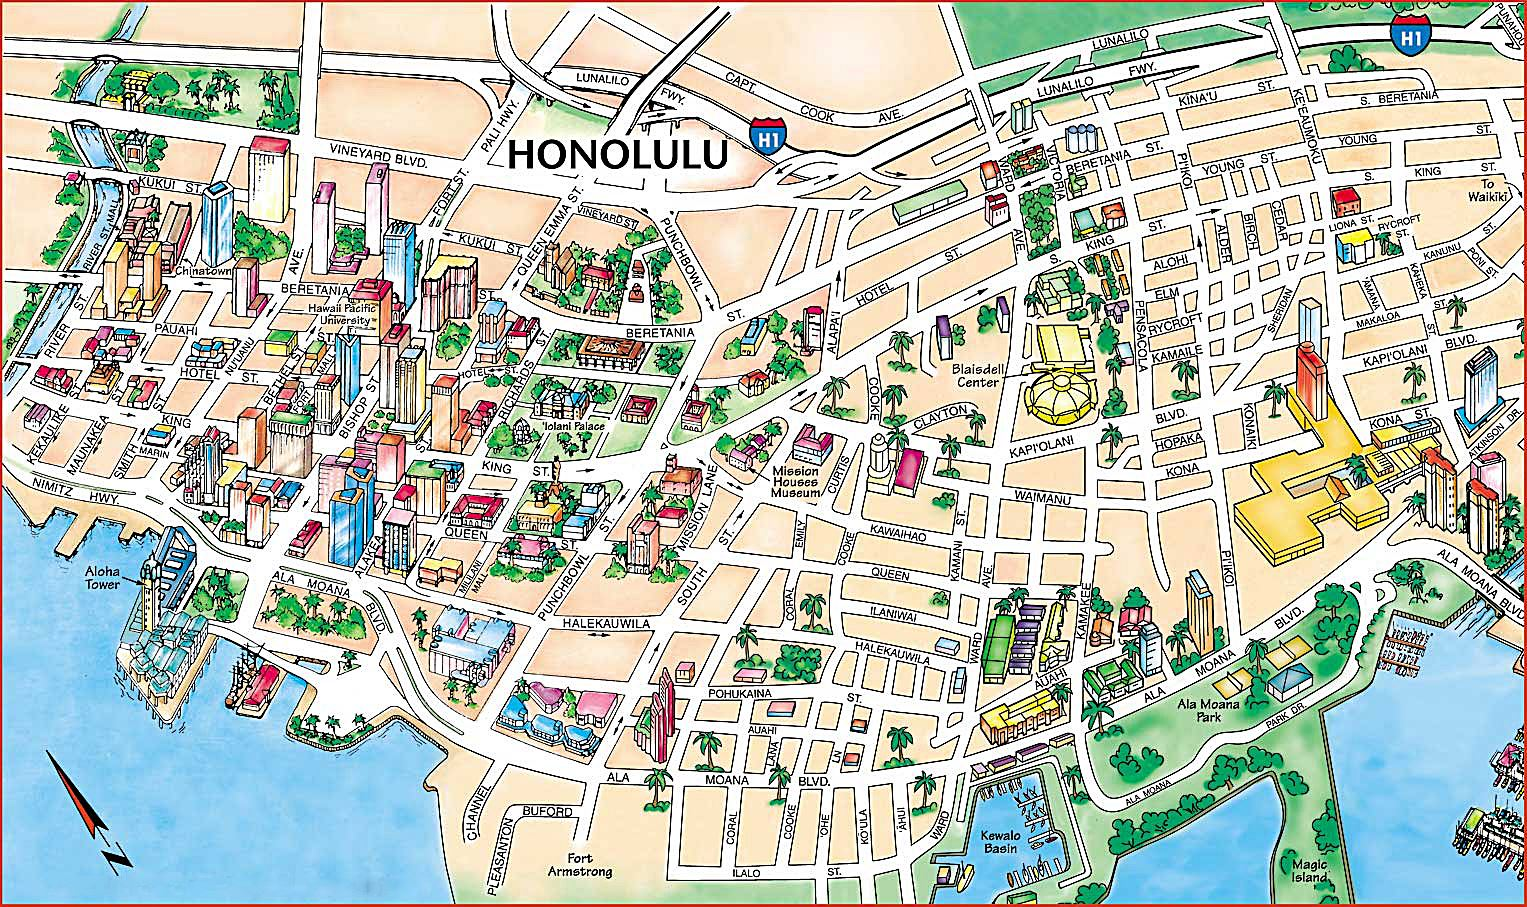 Large Honolulu Maps For Free Download And Print High